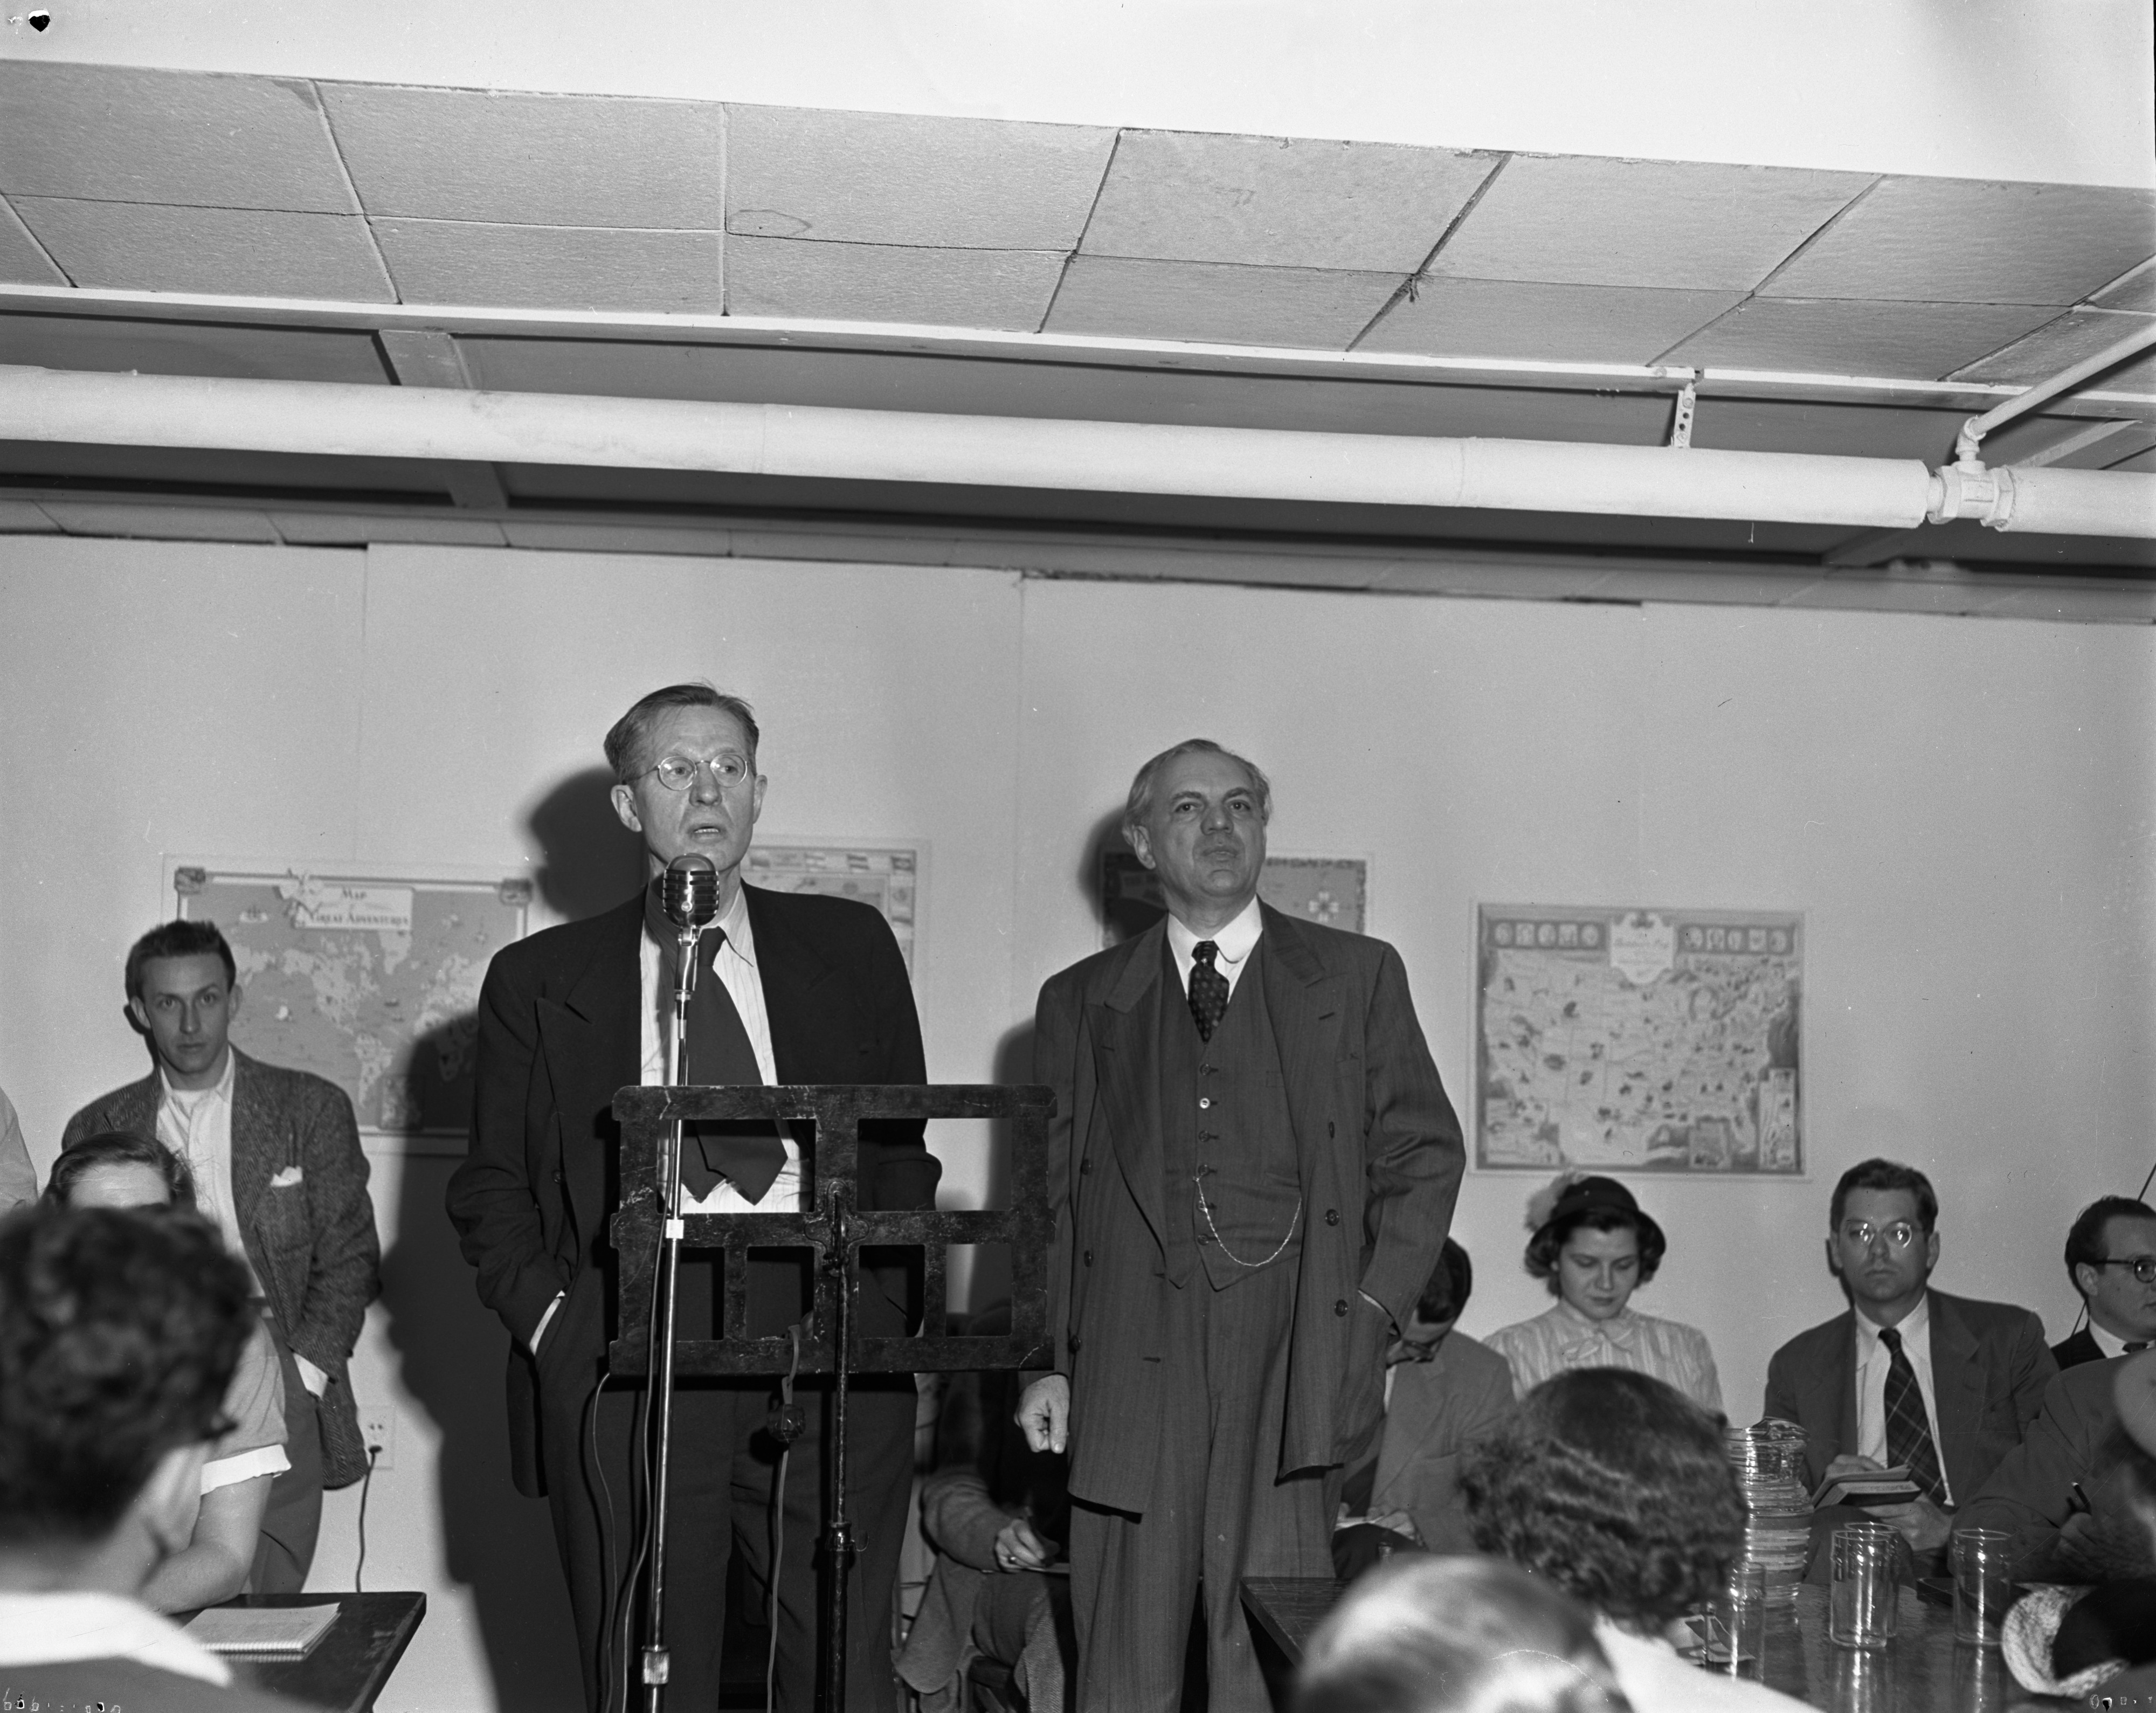 Professor Preston W. Slosson and Dr. R. J. Phillips debate Communism versus Capitalism, April 27, 1950 image